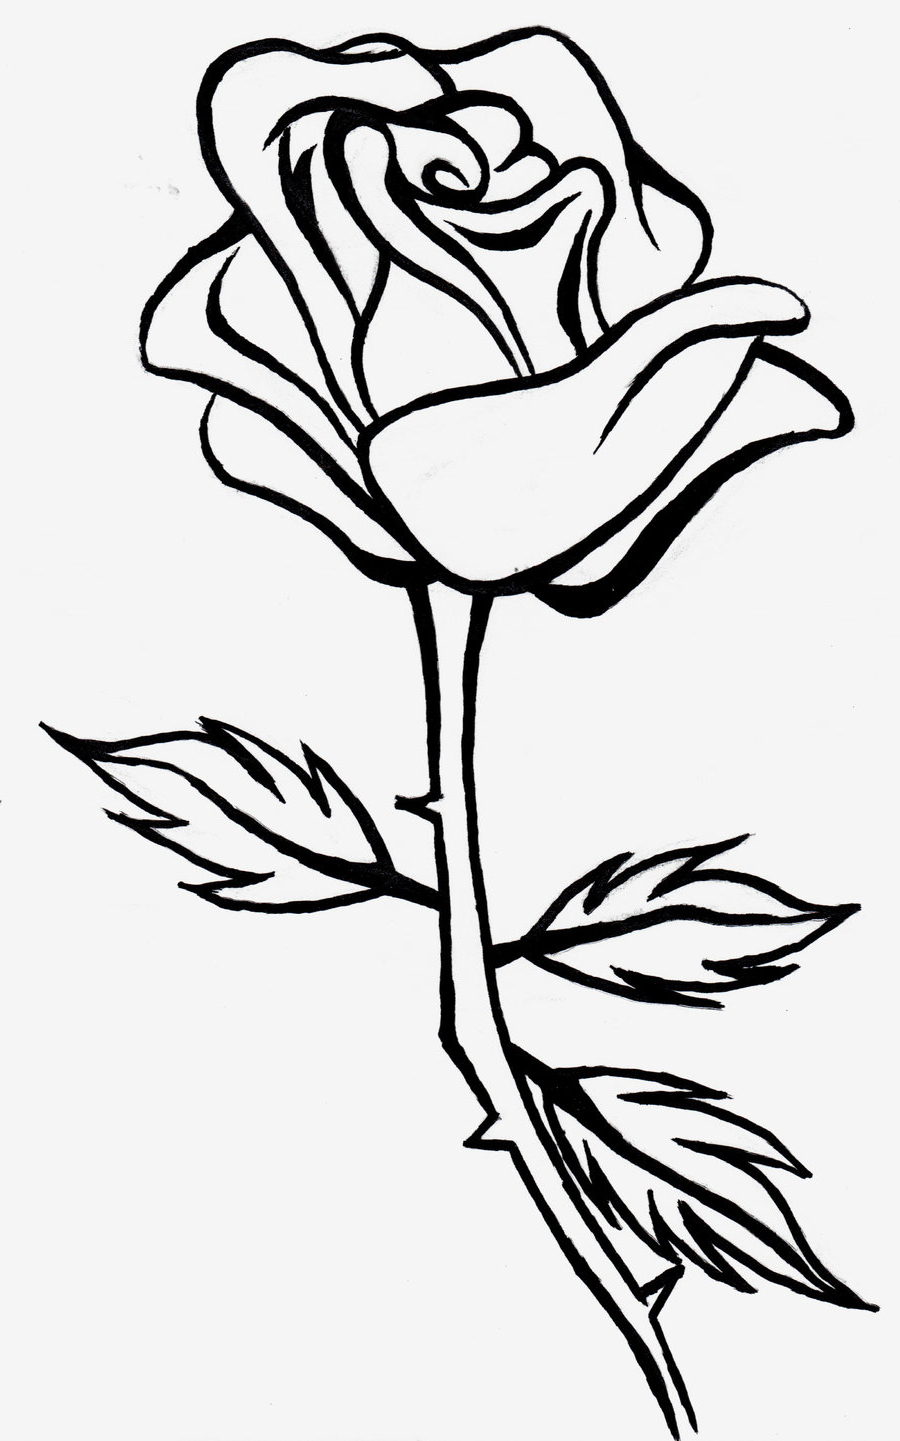 Line Drawing Of Rose : Line drawing of a rose free download best